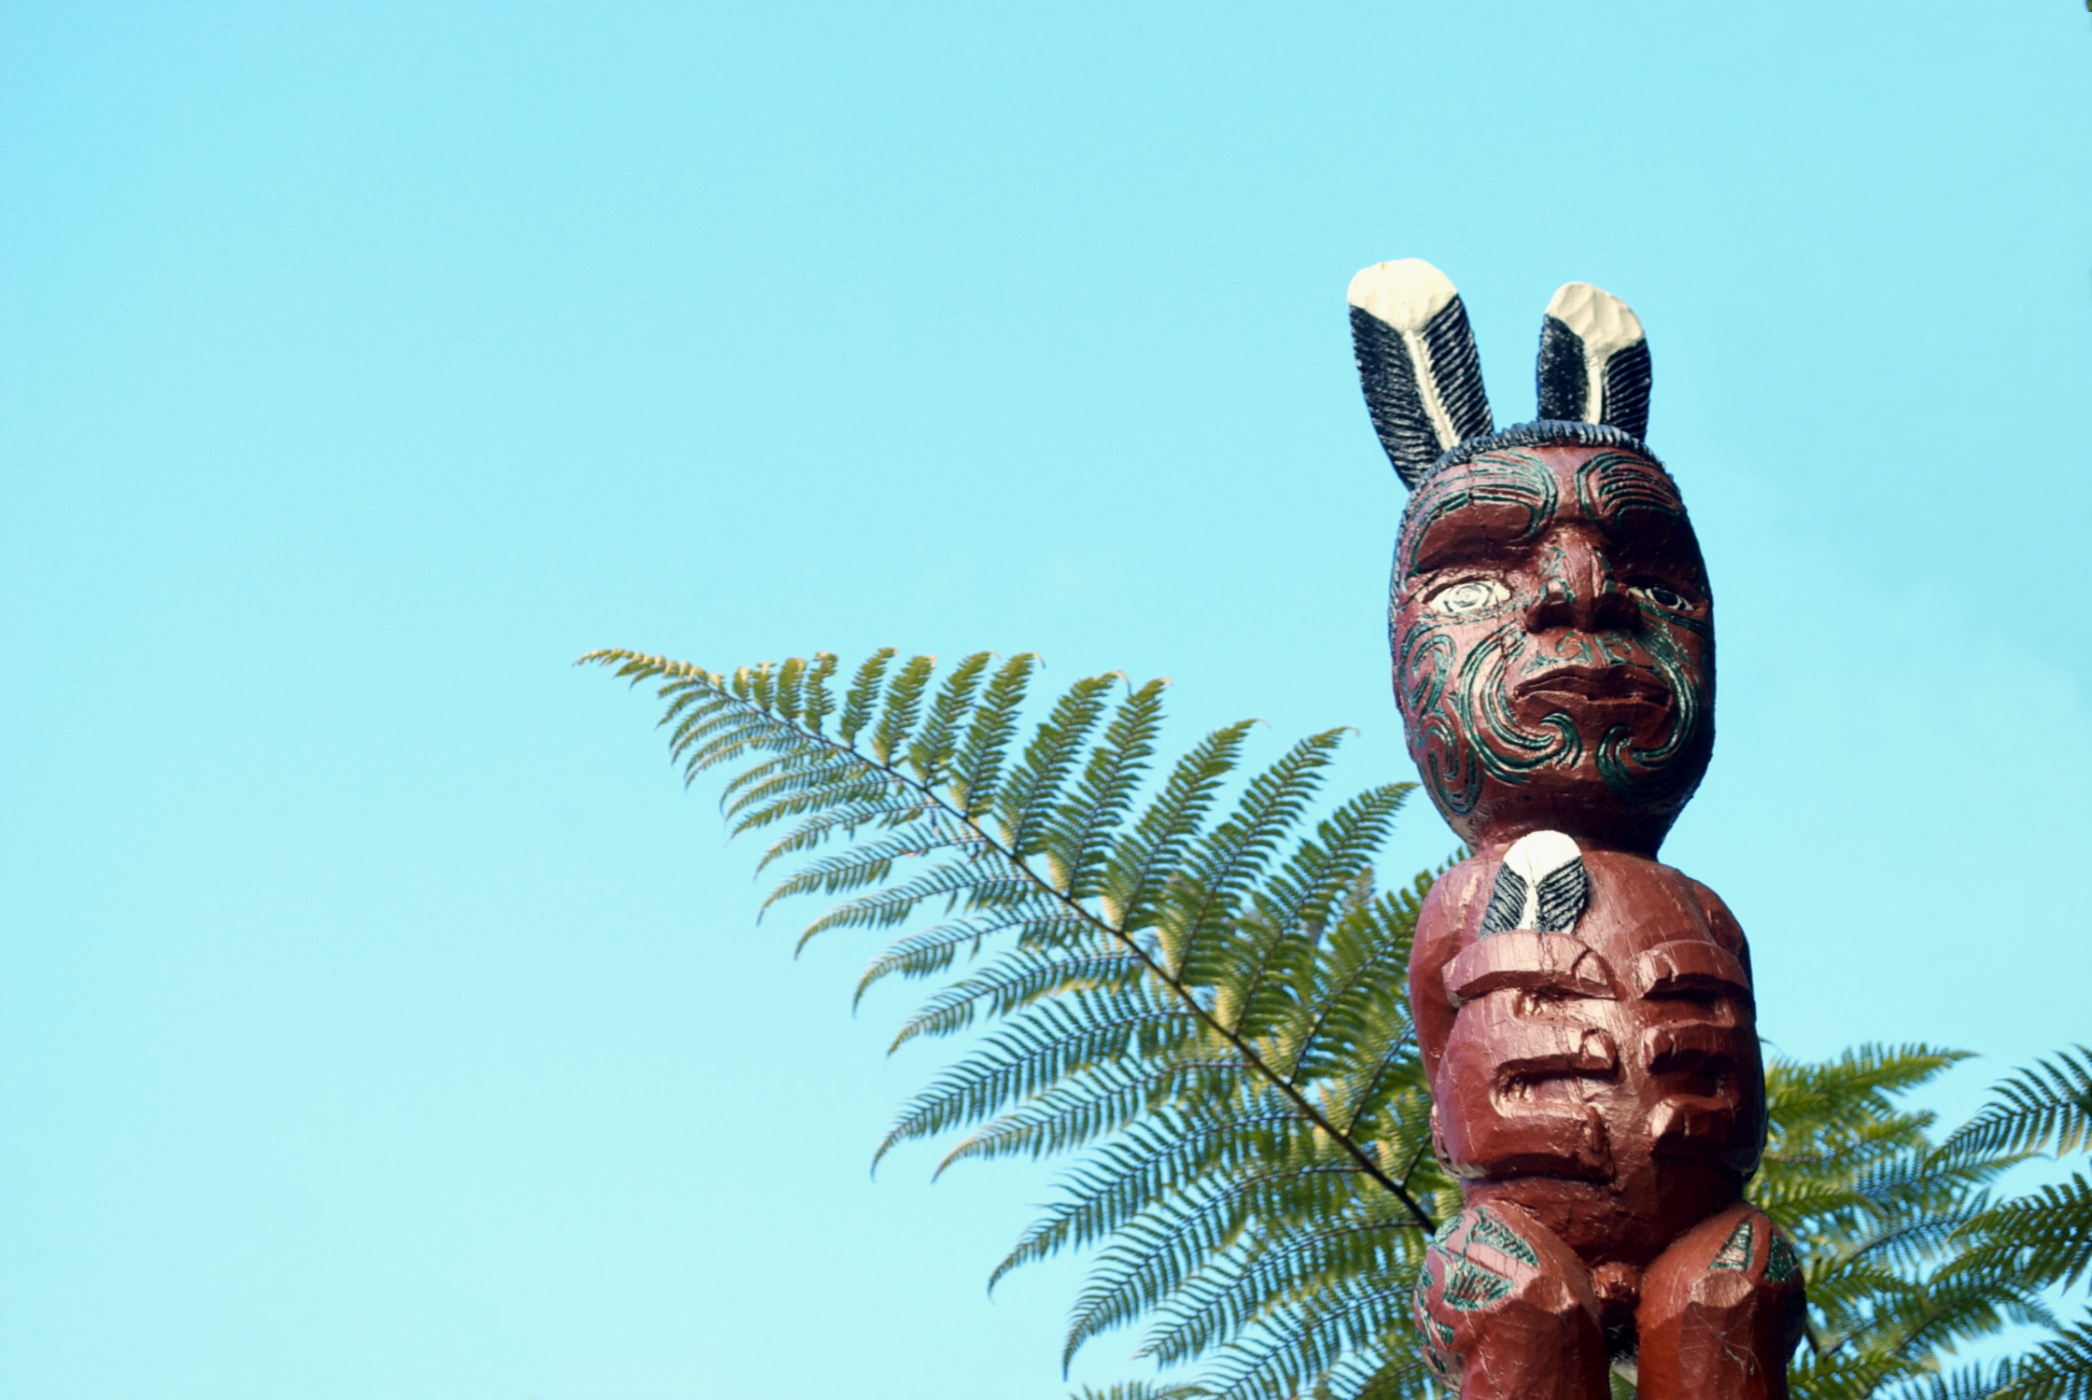 Looking up at a Maori Pou Figure on a Gateway Entarance to Meeting House. In the background a Ponga Fern and clear blue sky for copy space.